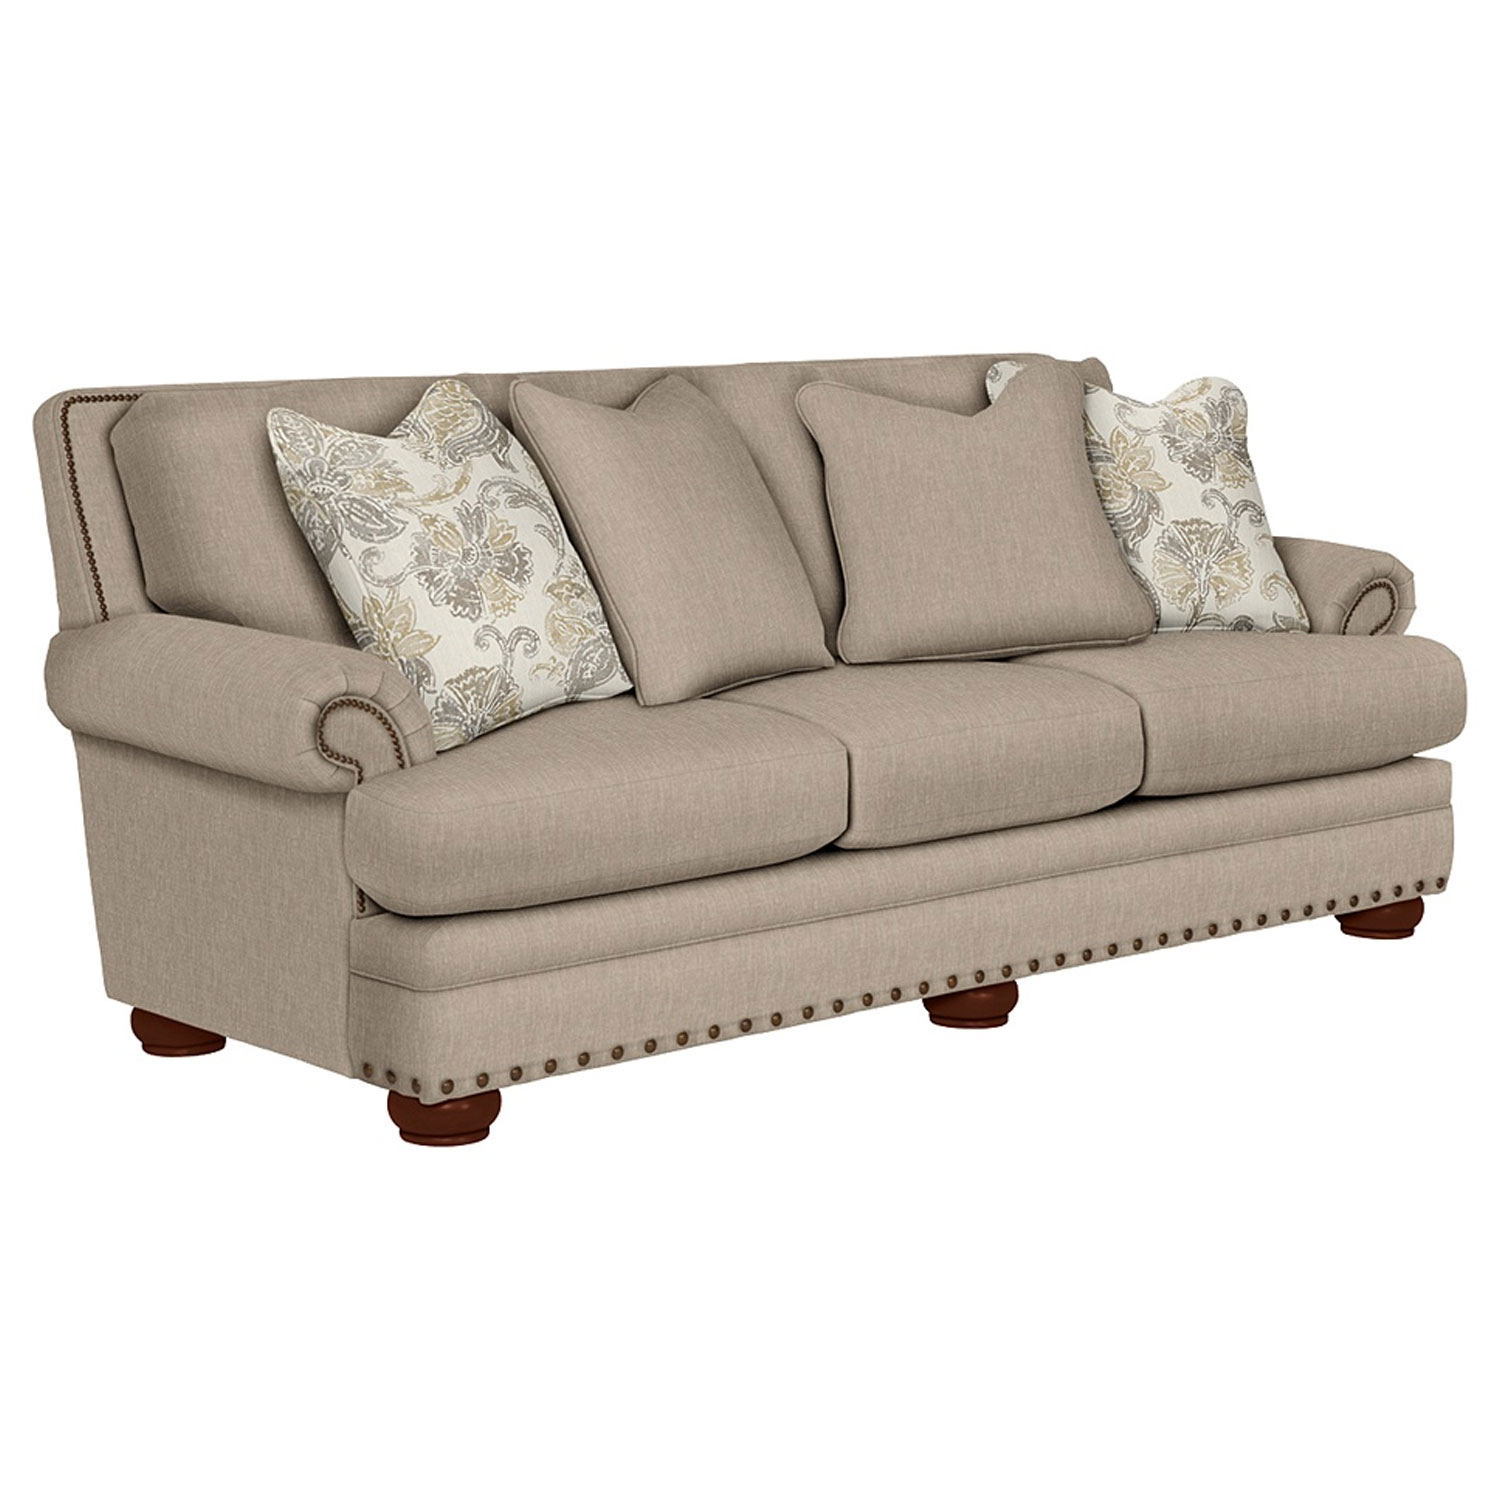 Lazboy 610 657 Brennan Premier Stationary Sofa | Hope Home Throughout Brennan Sofa Chairs (Image 18 of 20)